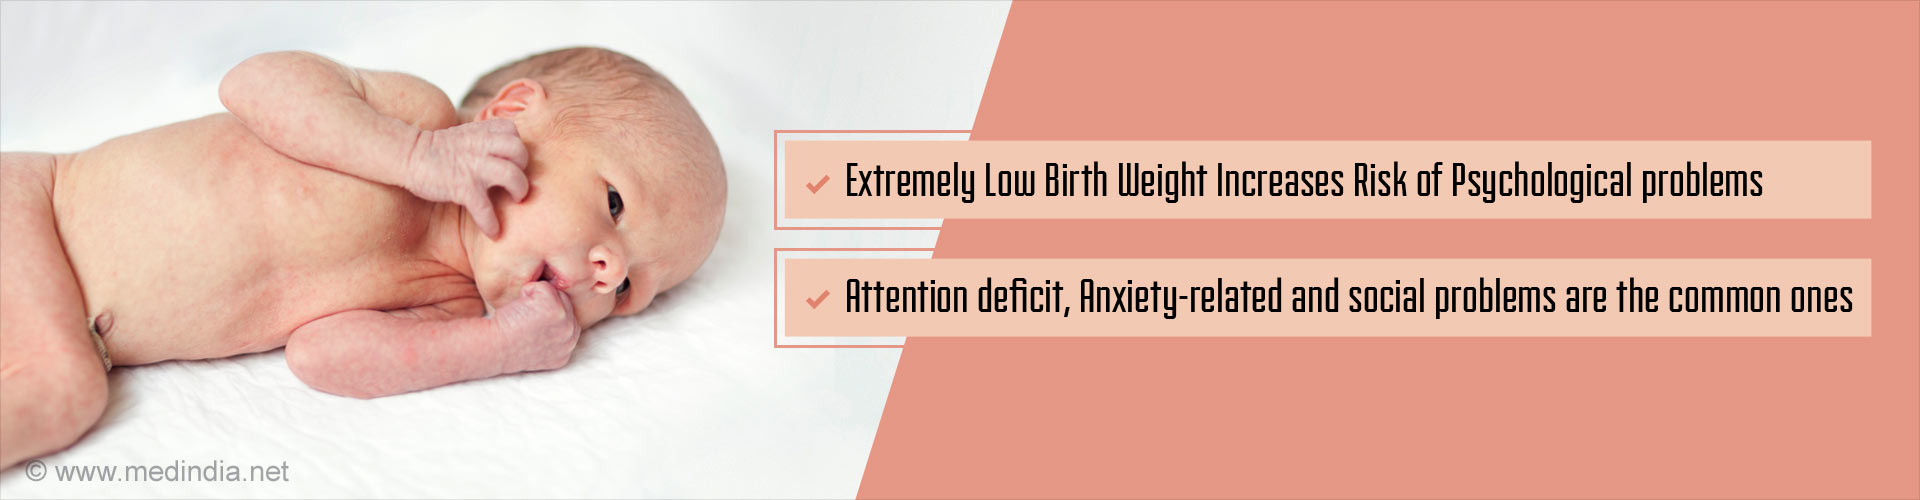 Very Low Birth Weight Increases Risk for Mental Health Problems